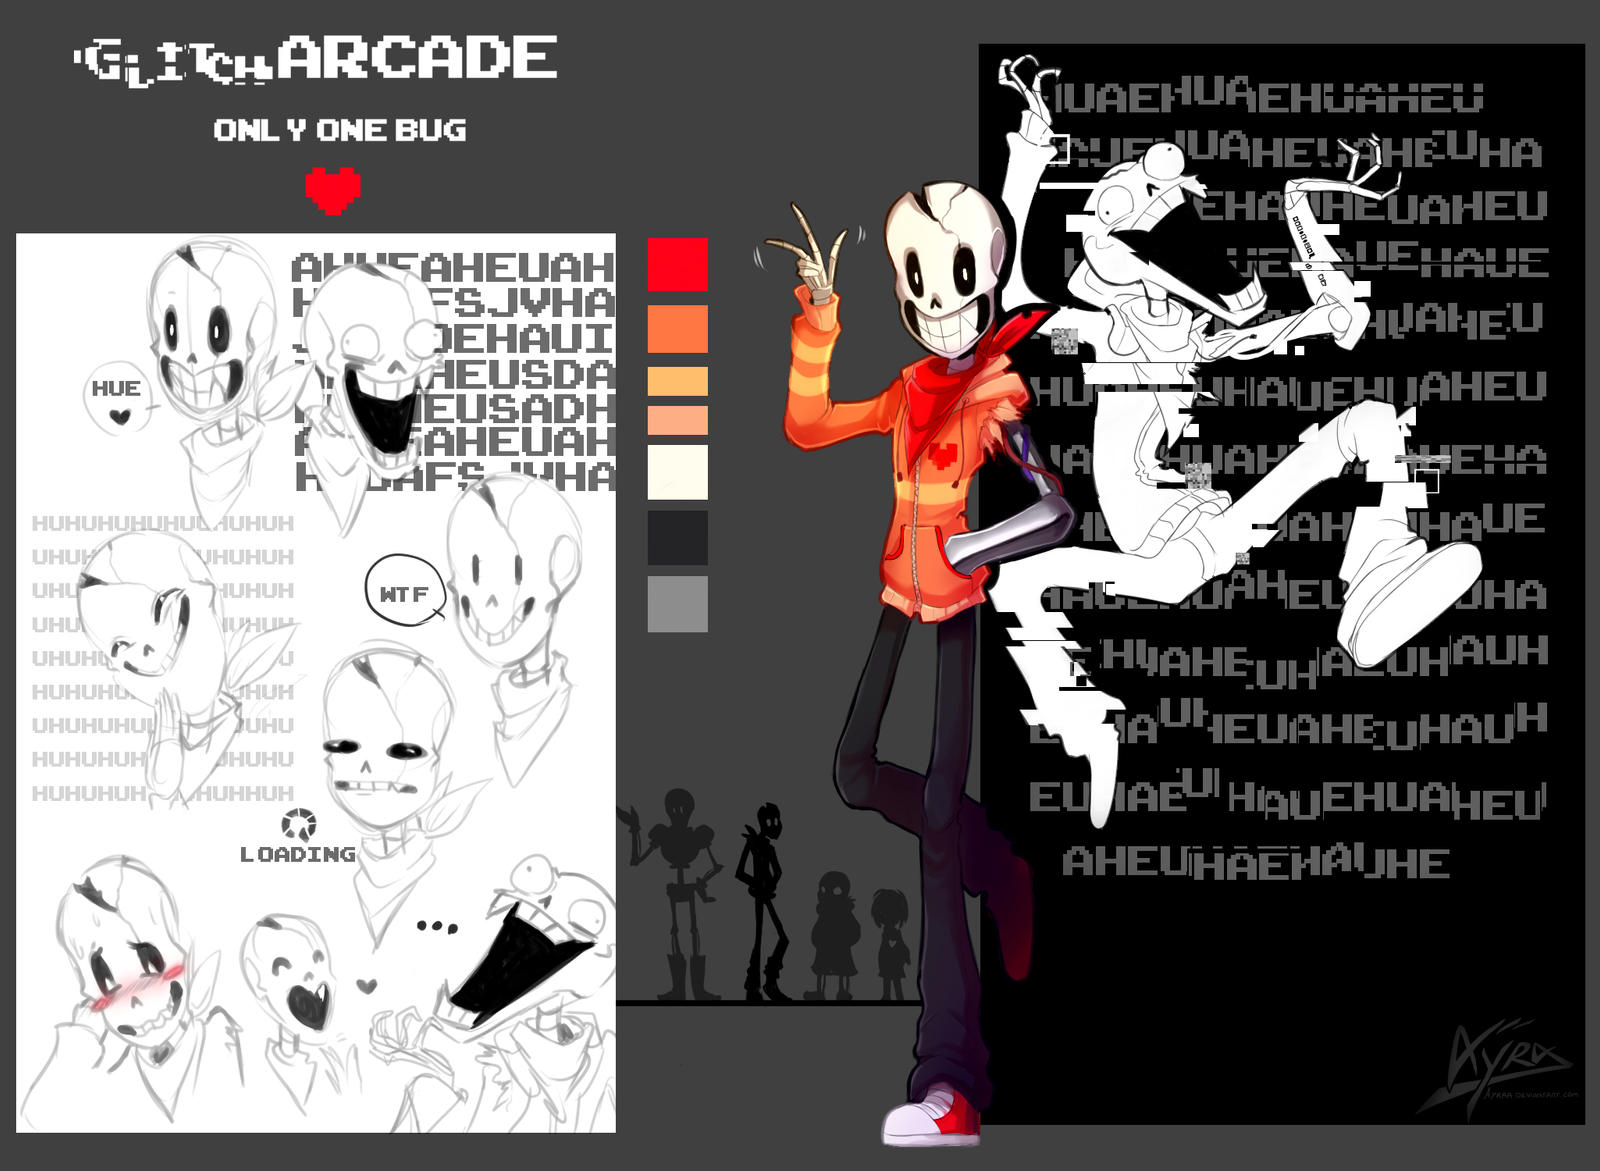 undertale oc   glitcharcade by ayraa on deviantart